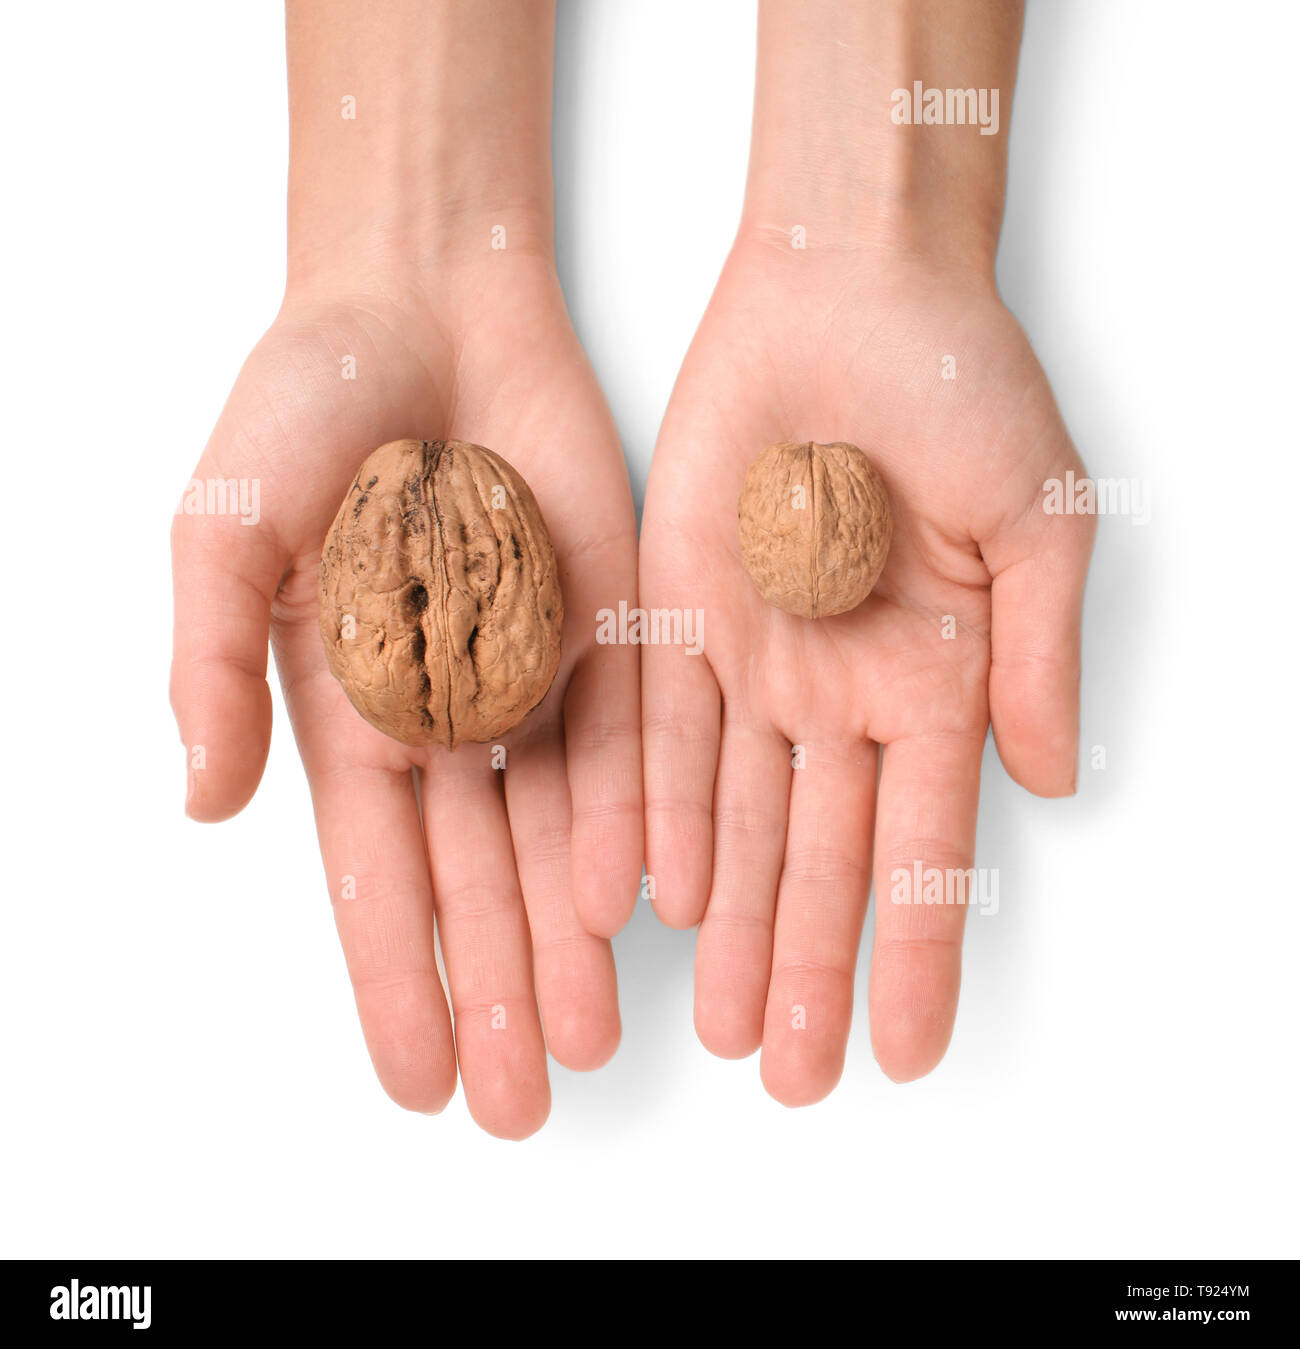 Female hands with unpeeled walnuts on white background - Stock Image